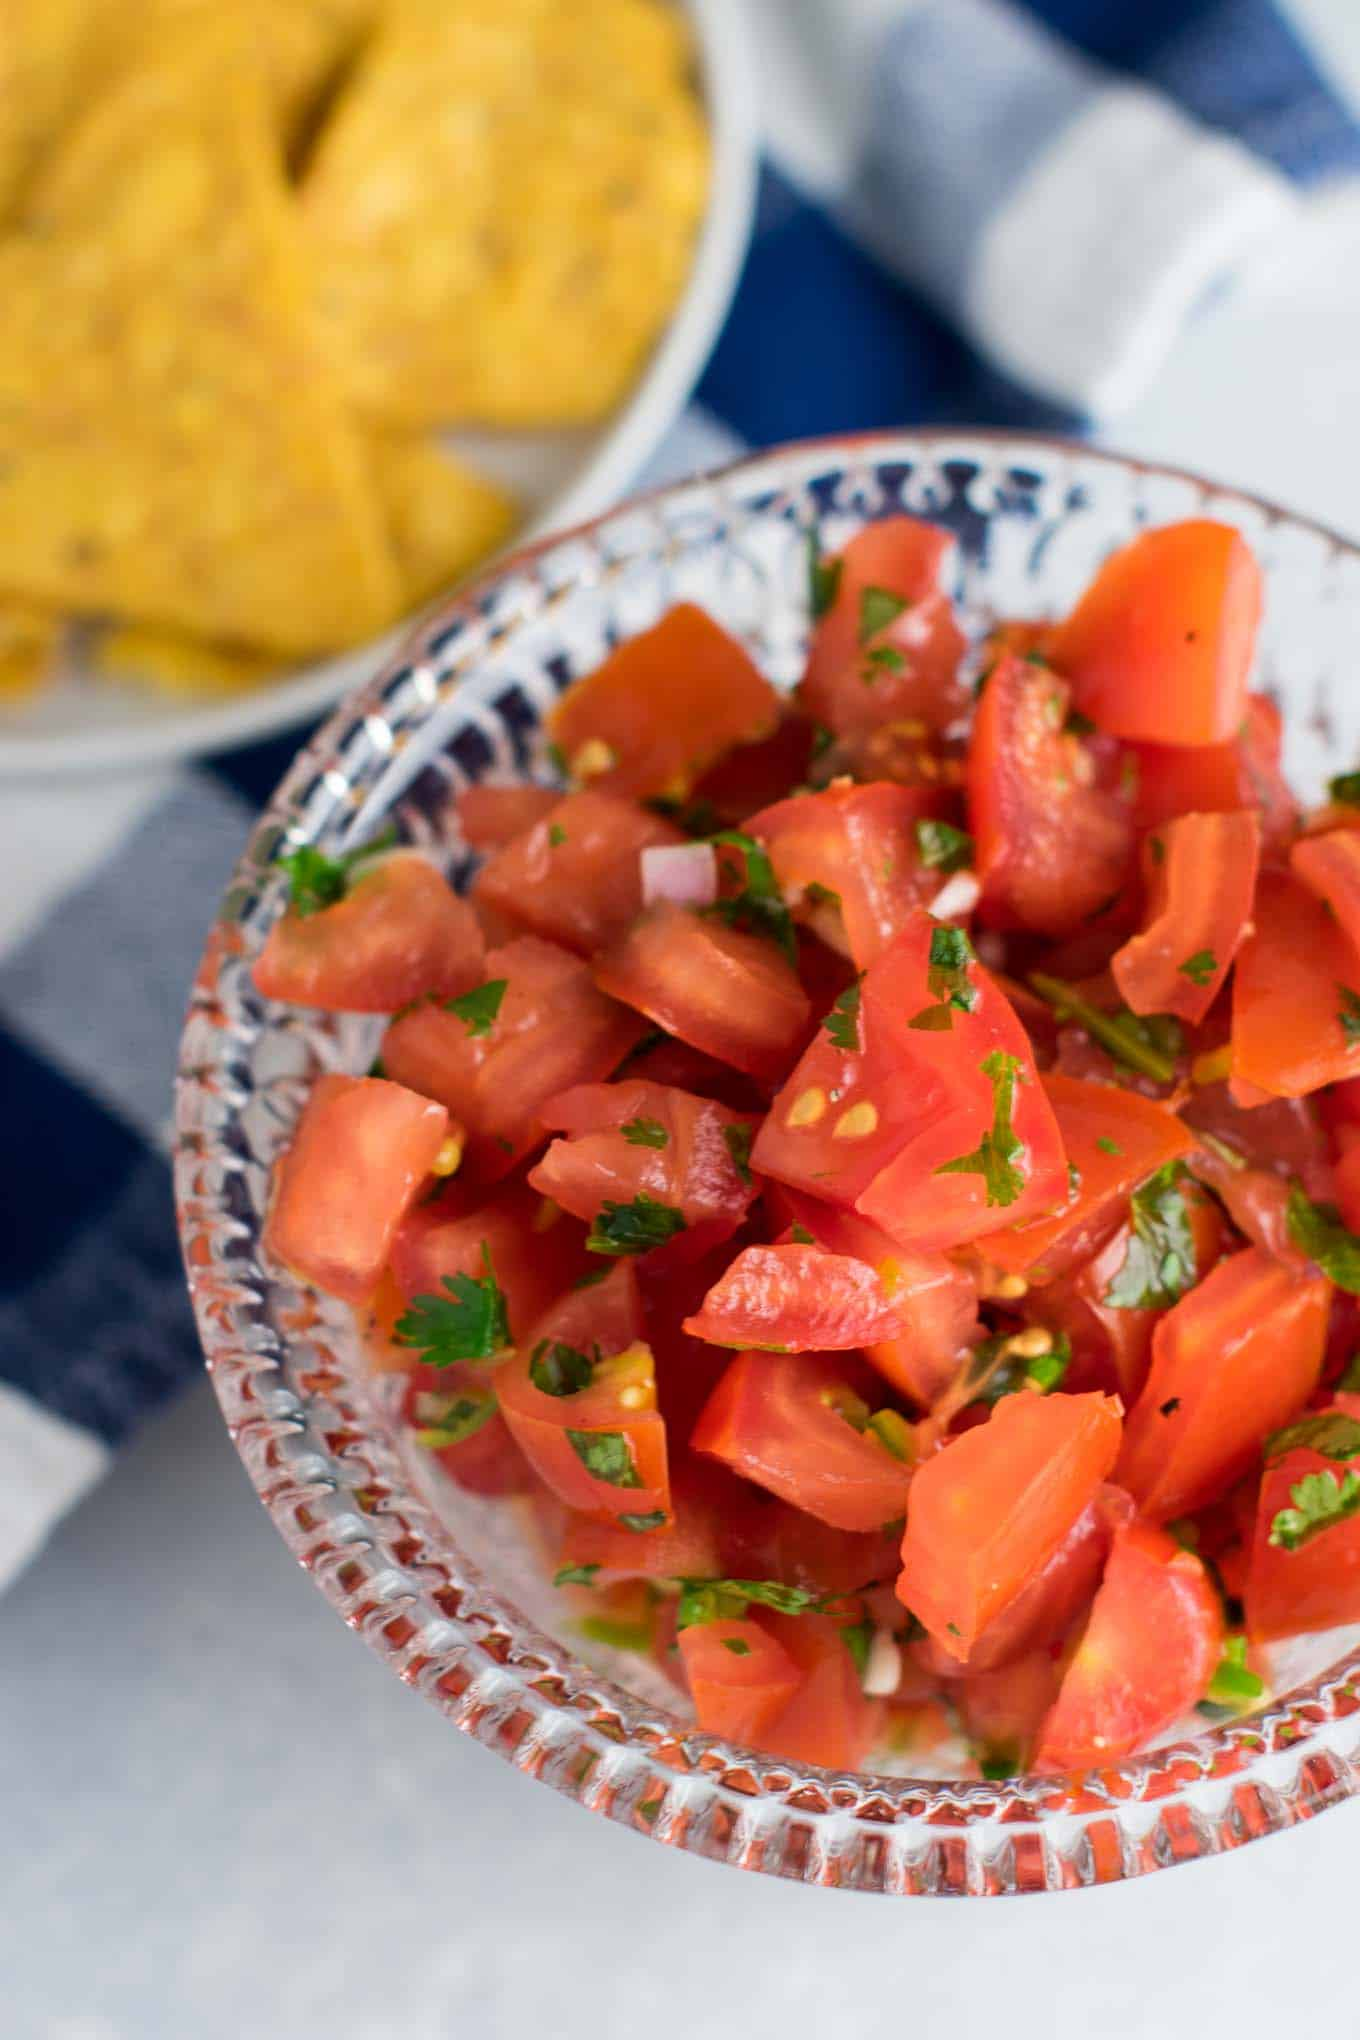 salsa in a bowl next to tortilla chips